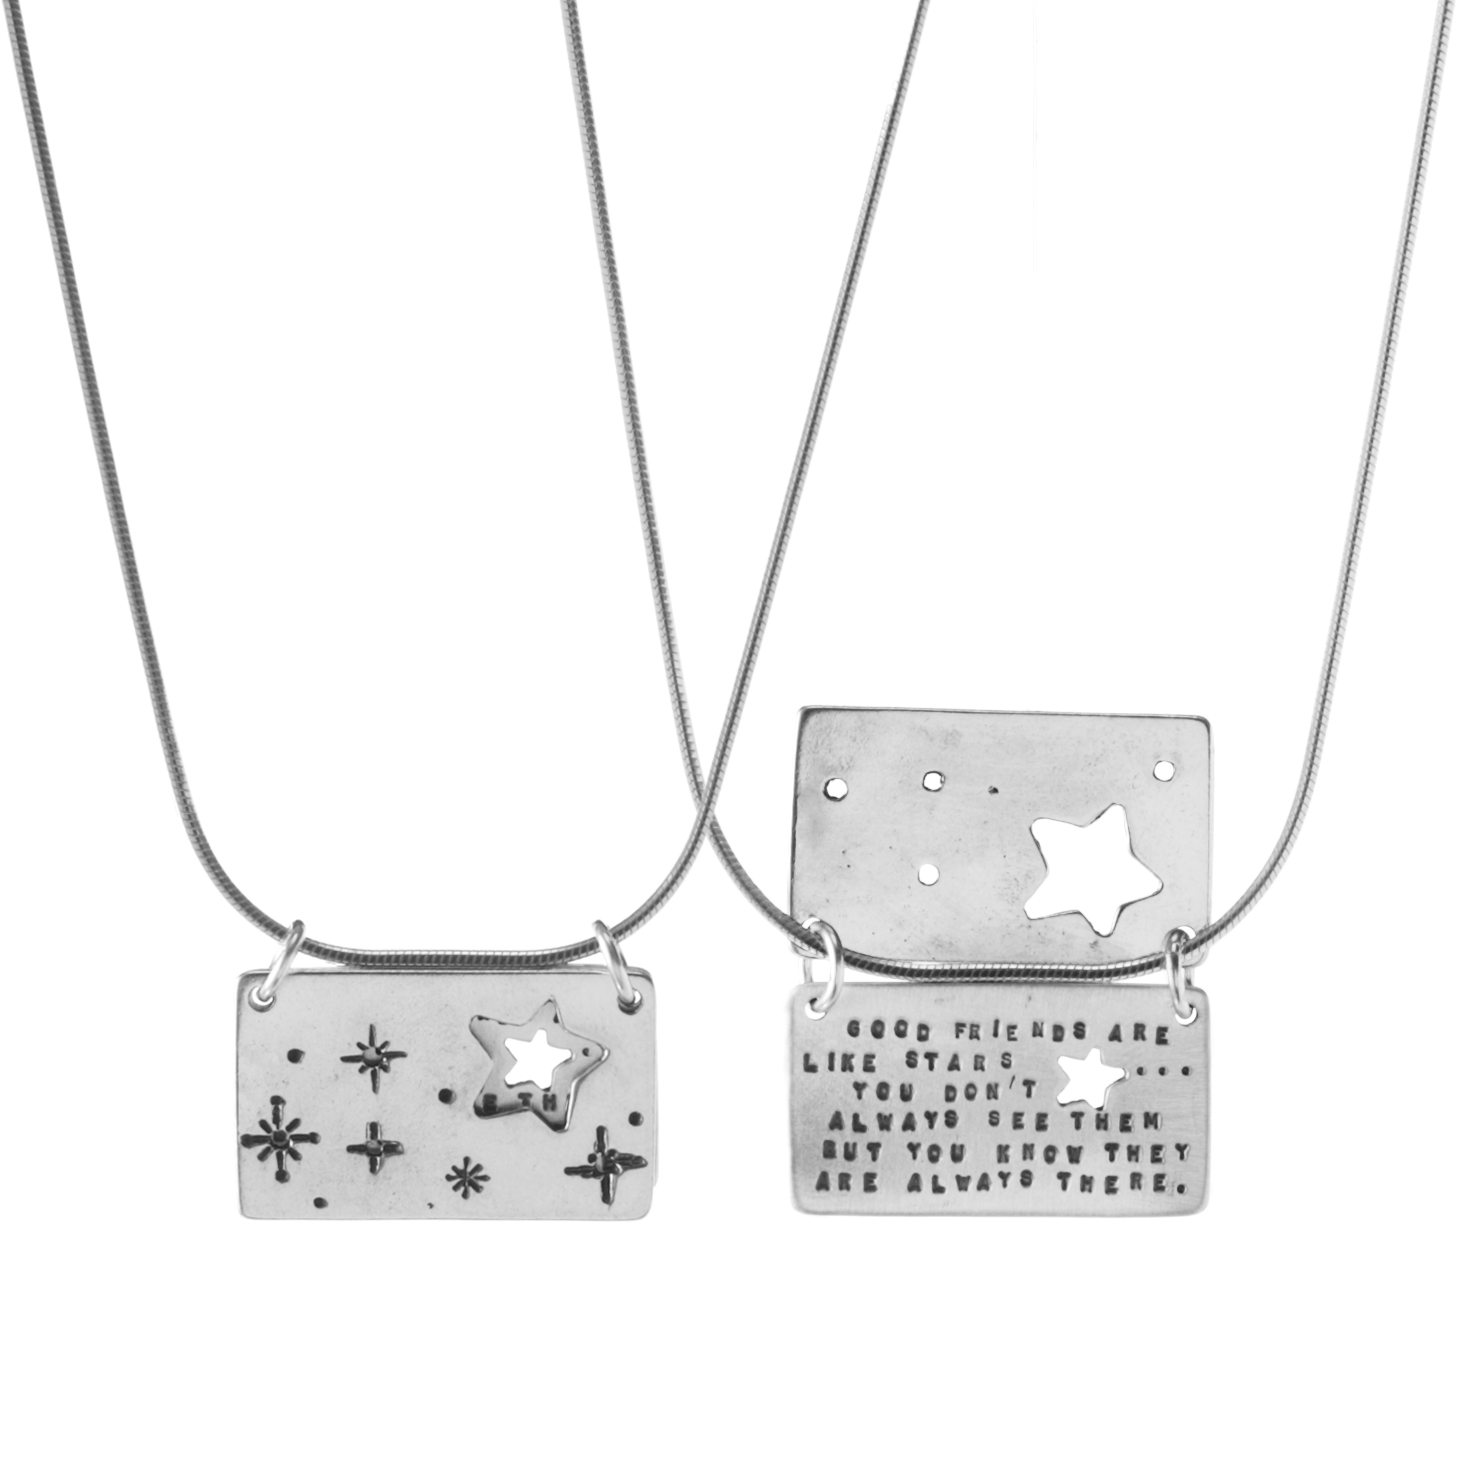 Starry Friends Necklace | UncommonGoods